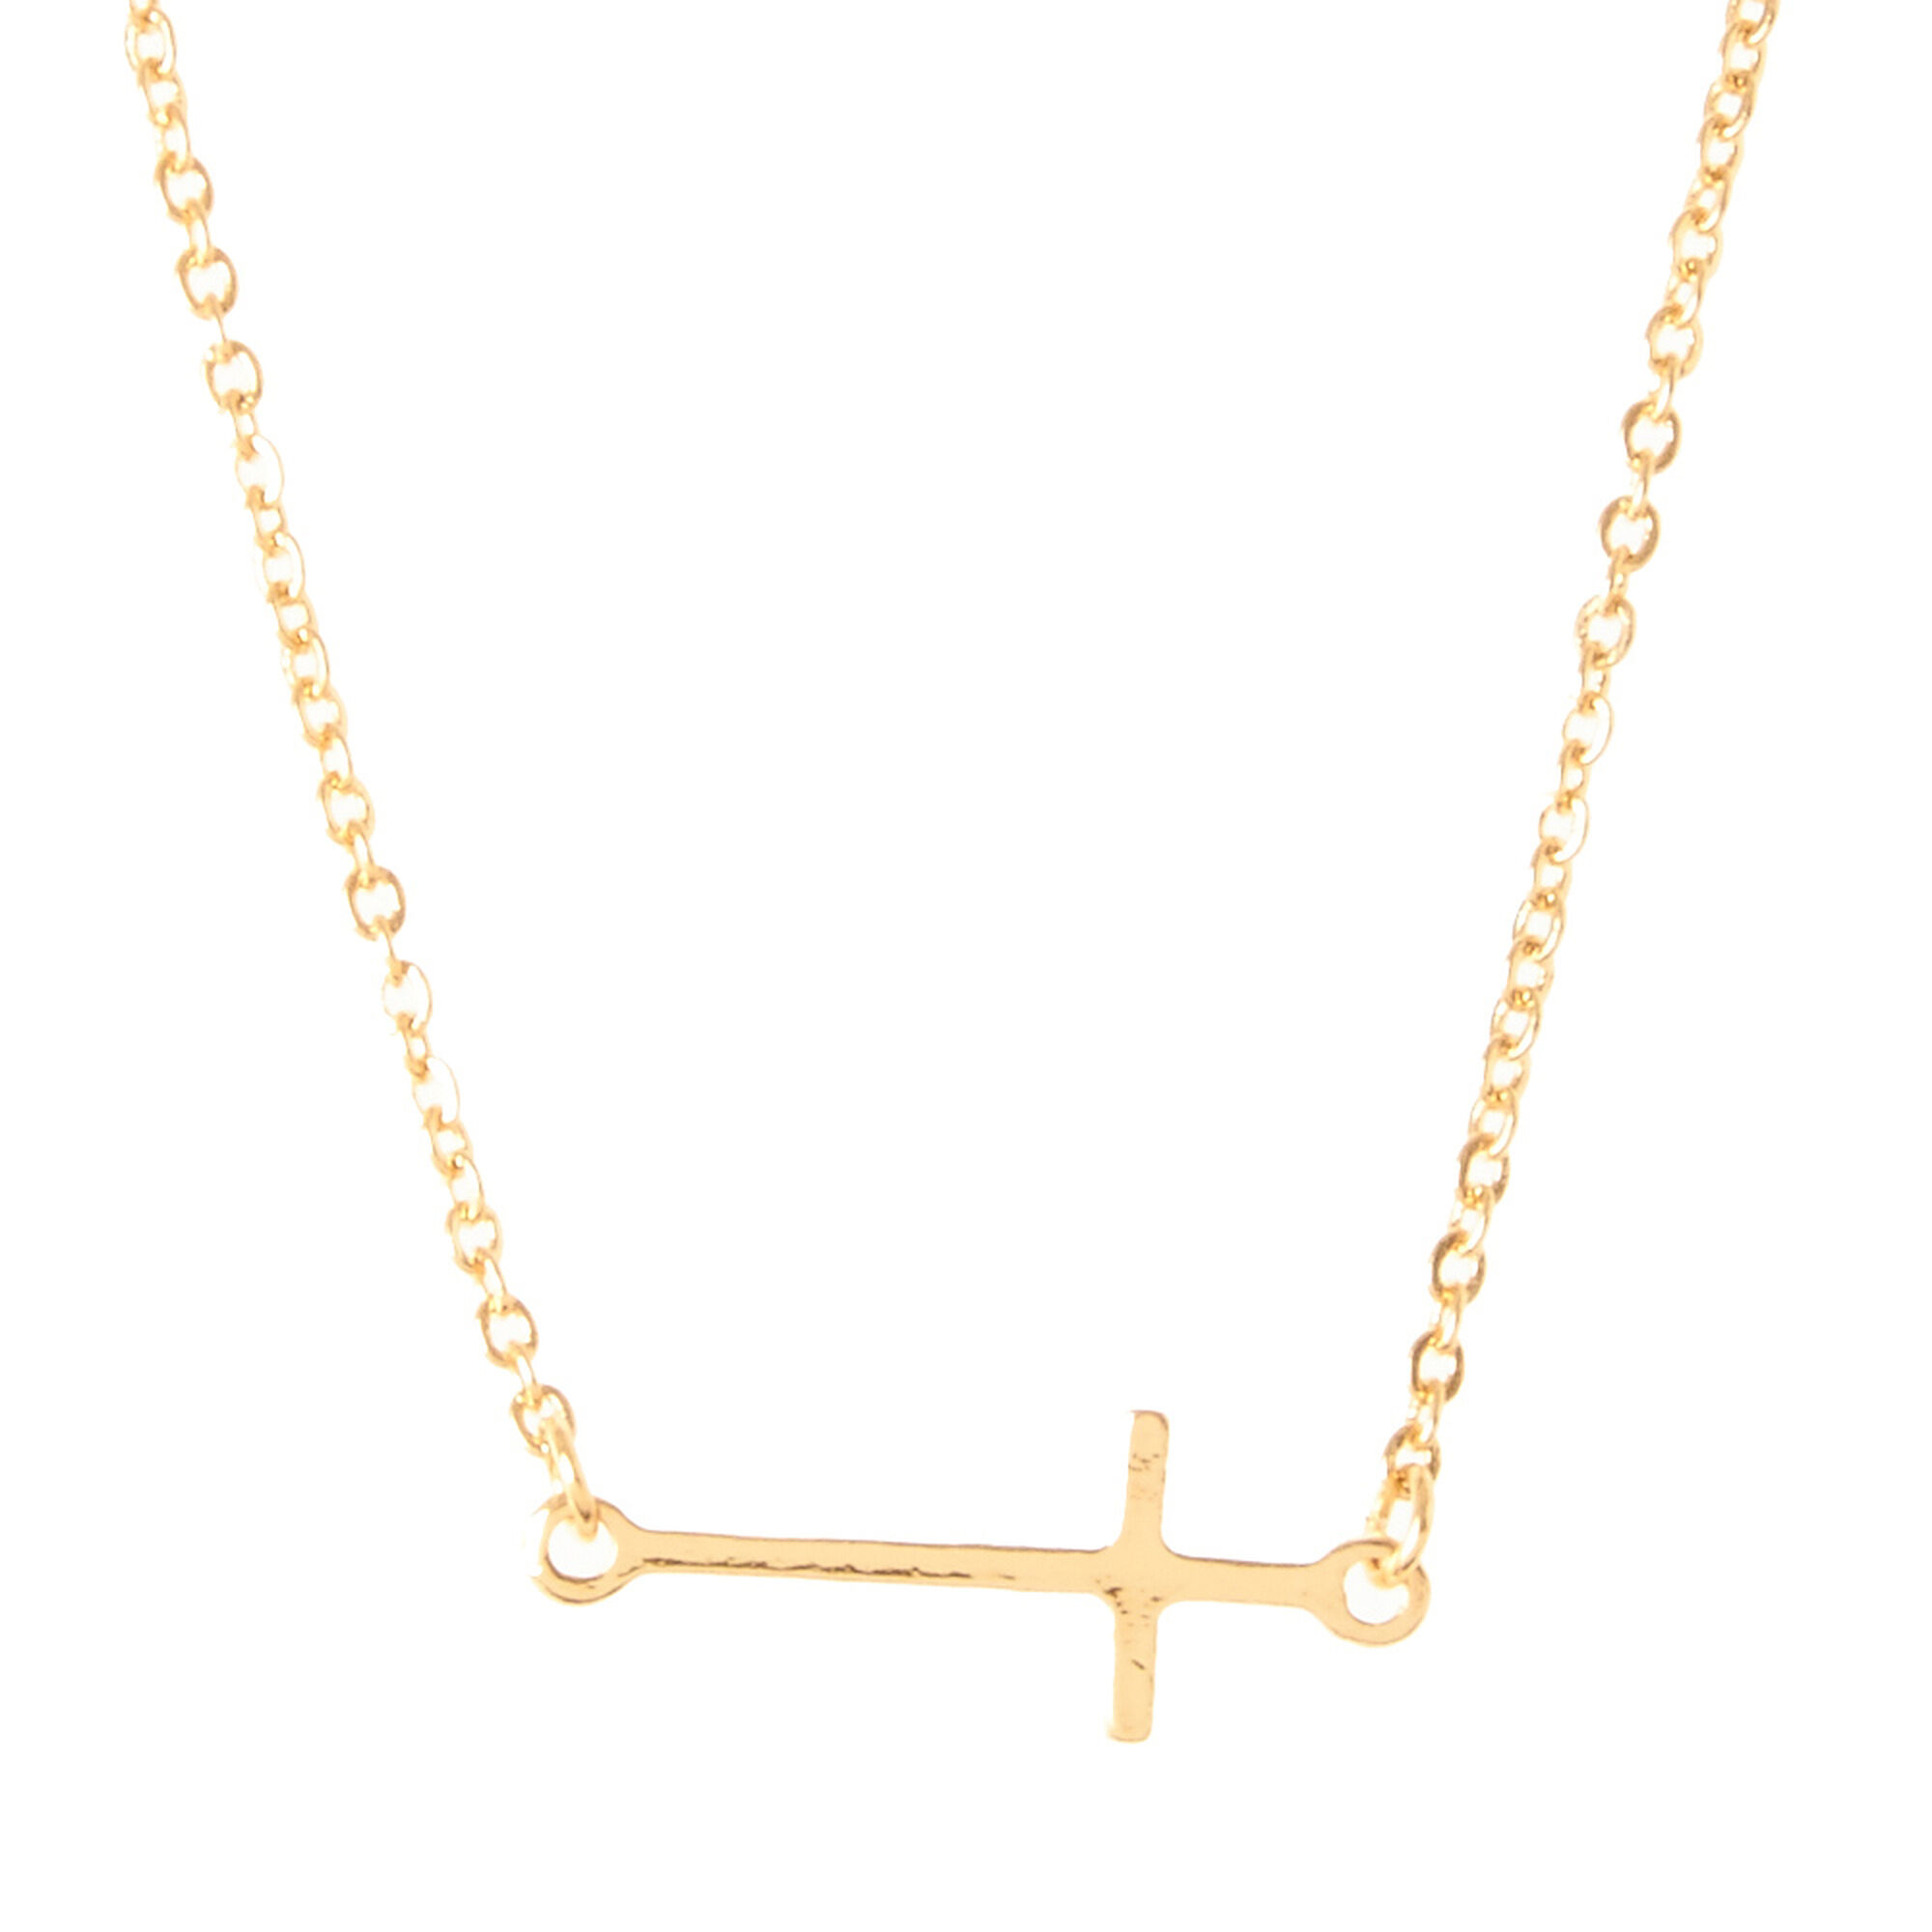 Gold cross necklace claires gold cross necklace mozeypictures Image collections